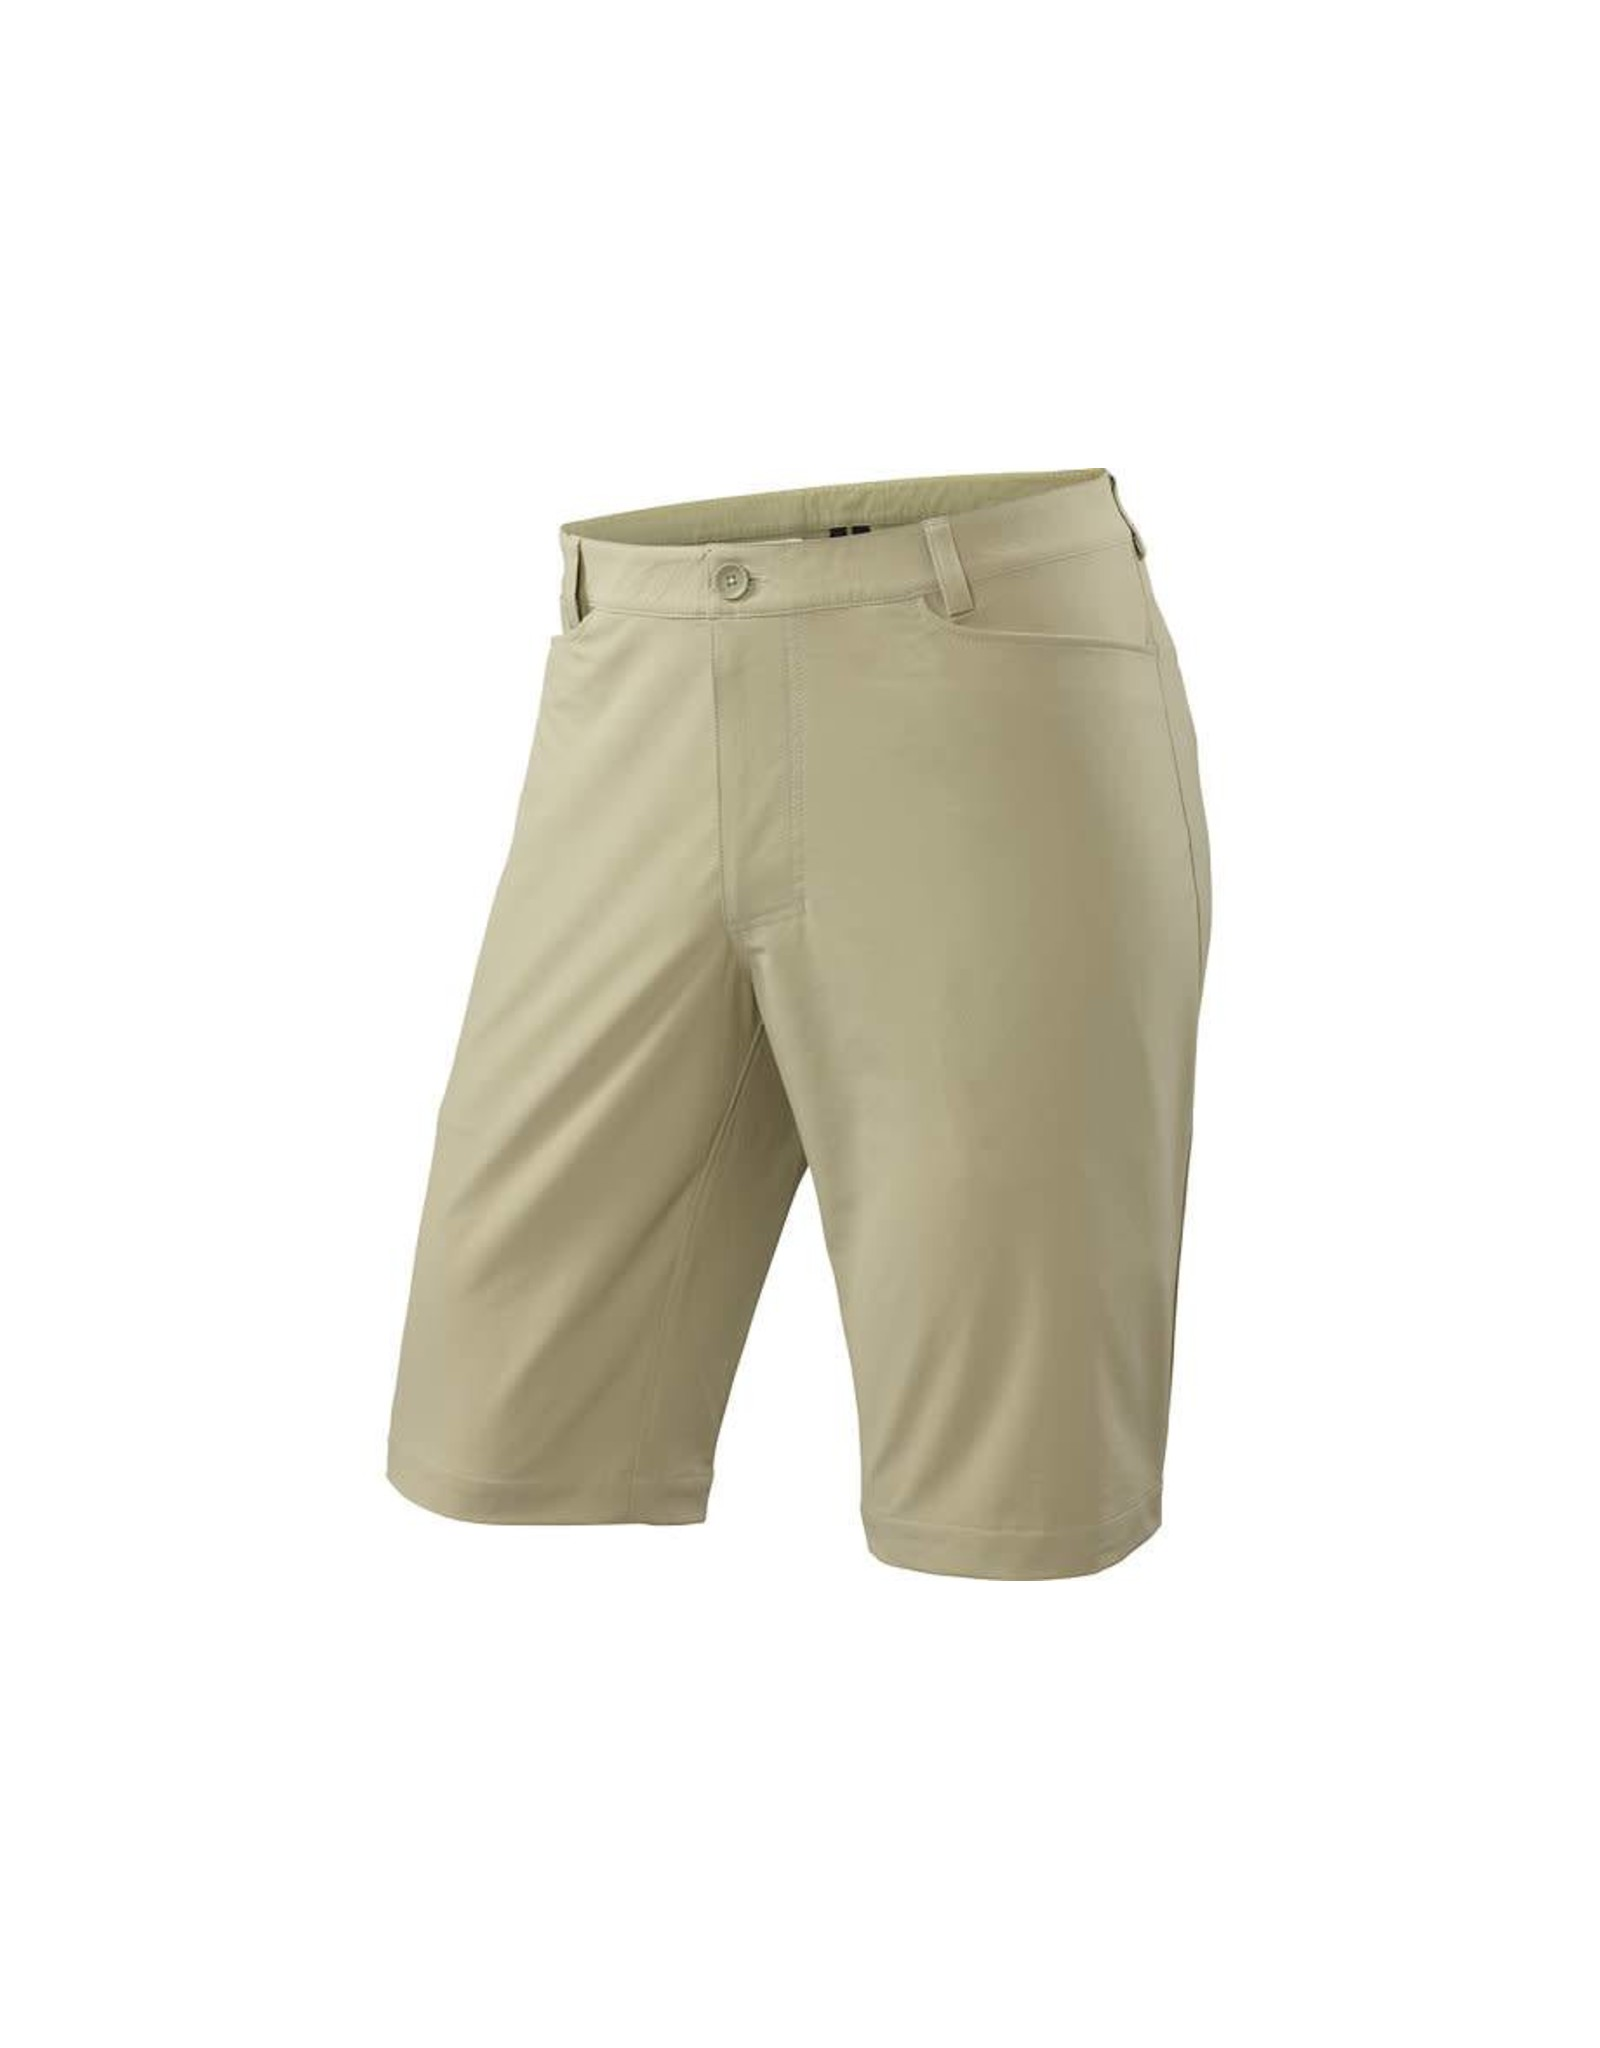 SPECIALIZED Specialized Utility Short Long - Khaki Tan - 34